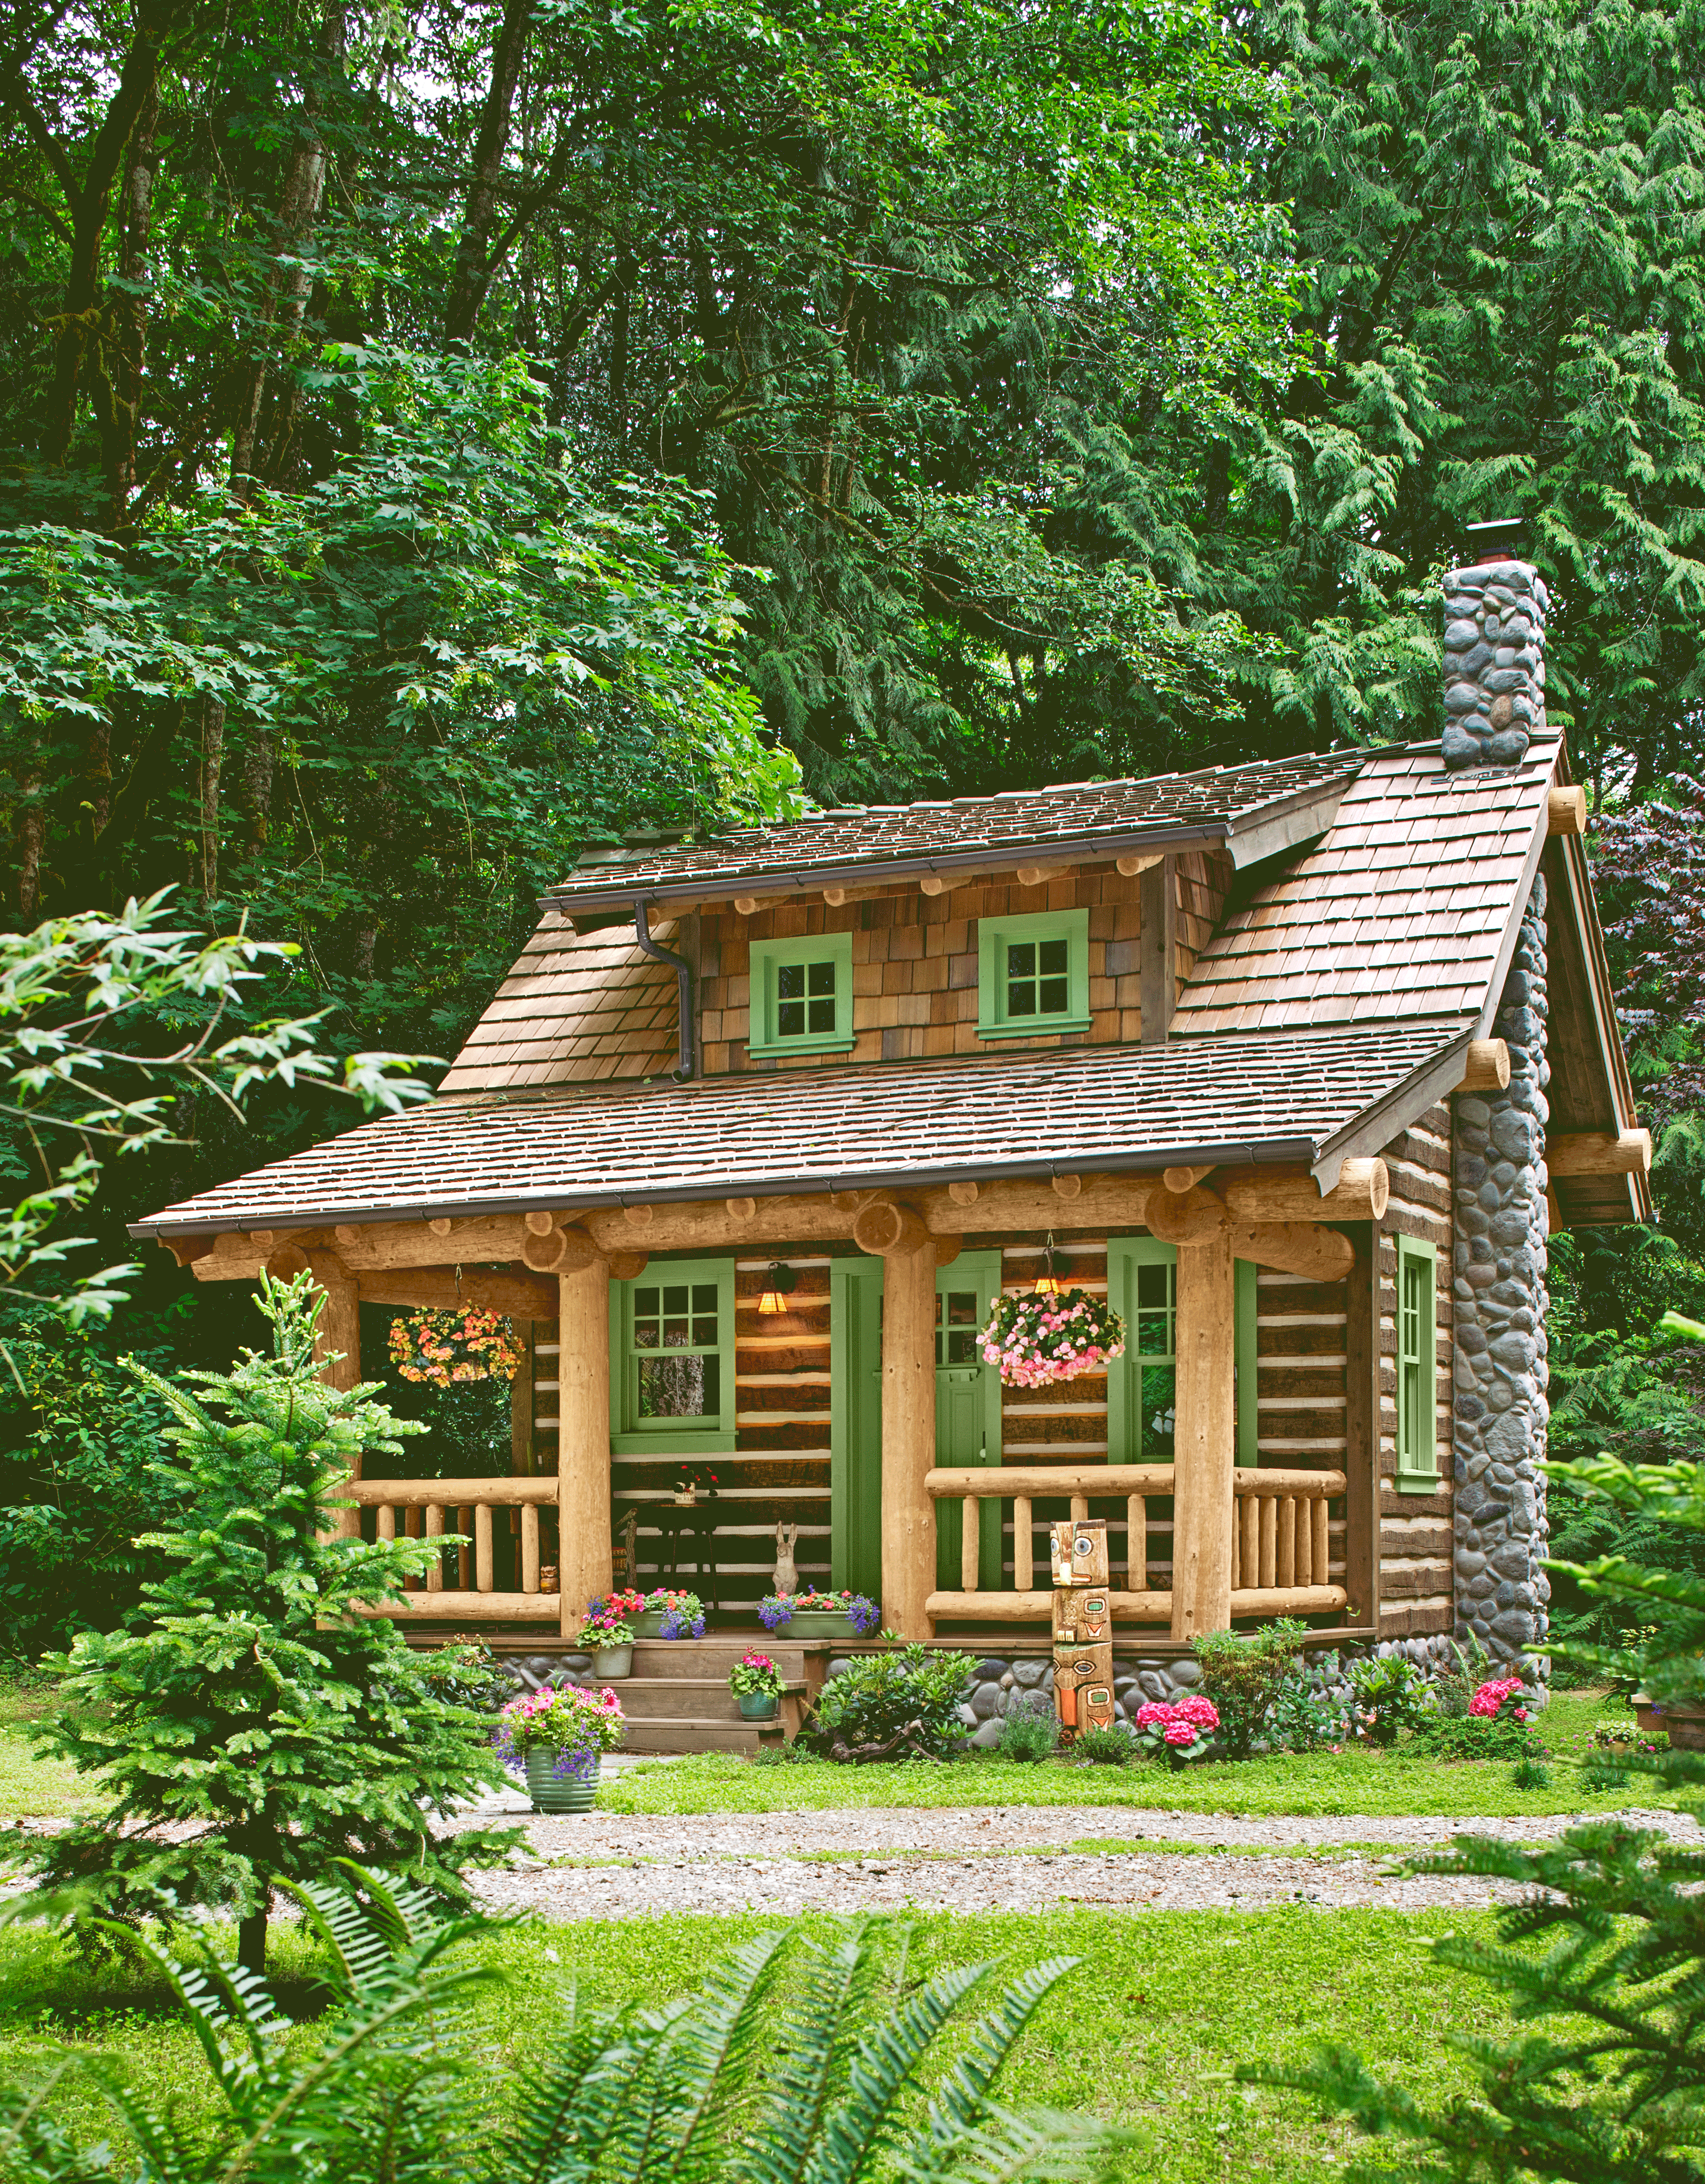 Country Decor Craft Ideas Comfort Food And Antique Appraisals Country Living Magazine Small House Pictures Tiny House Design Little Cabin